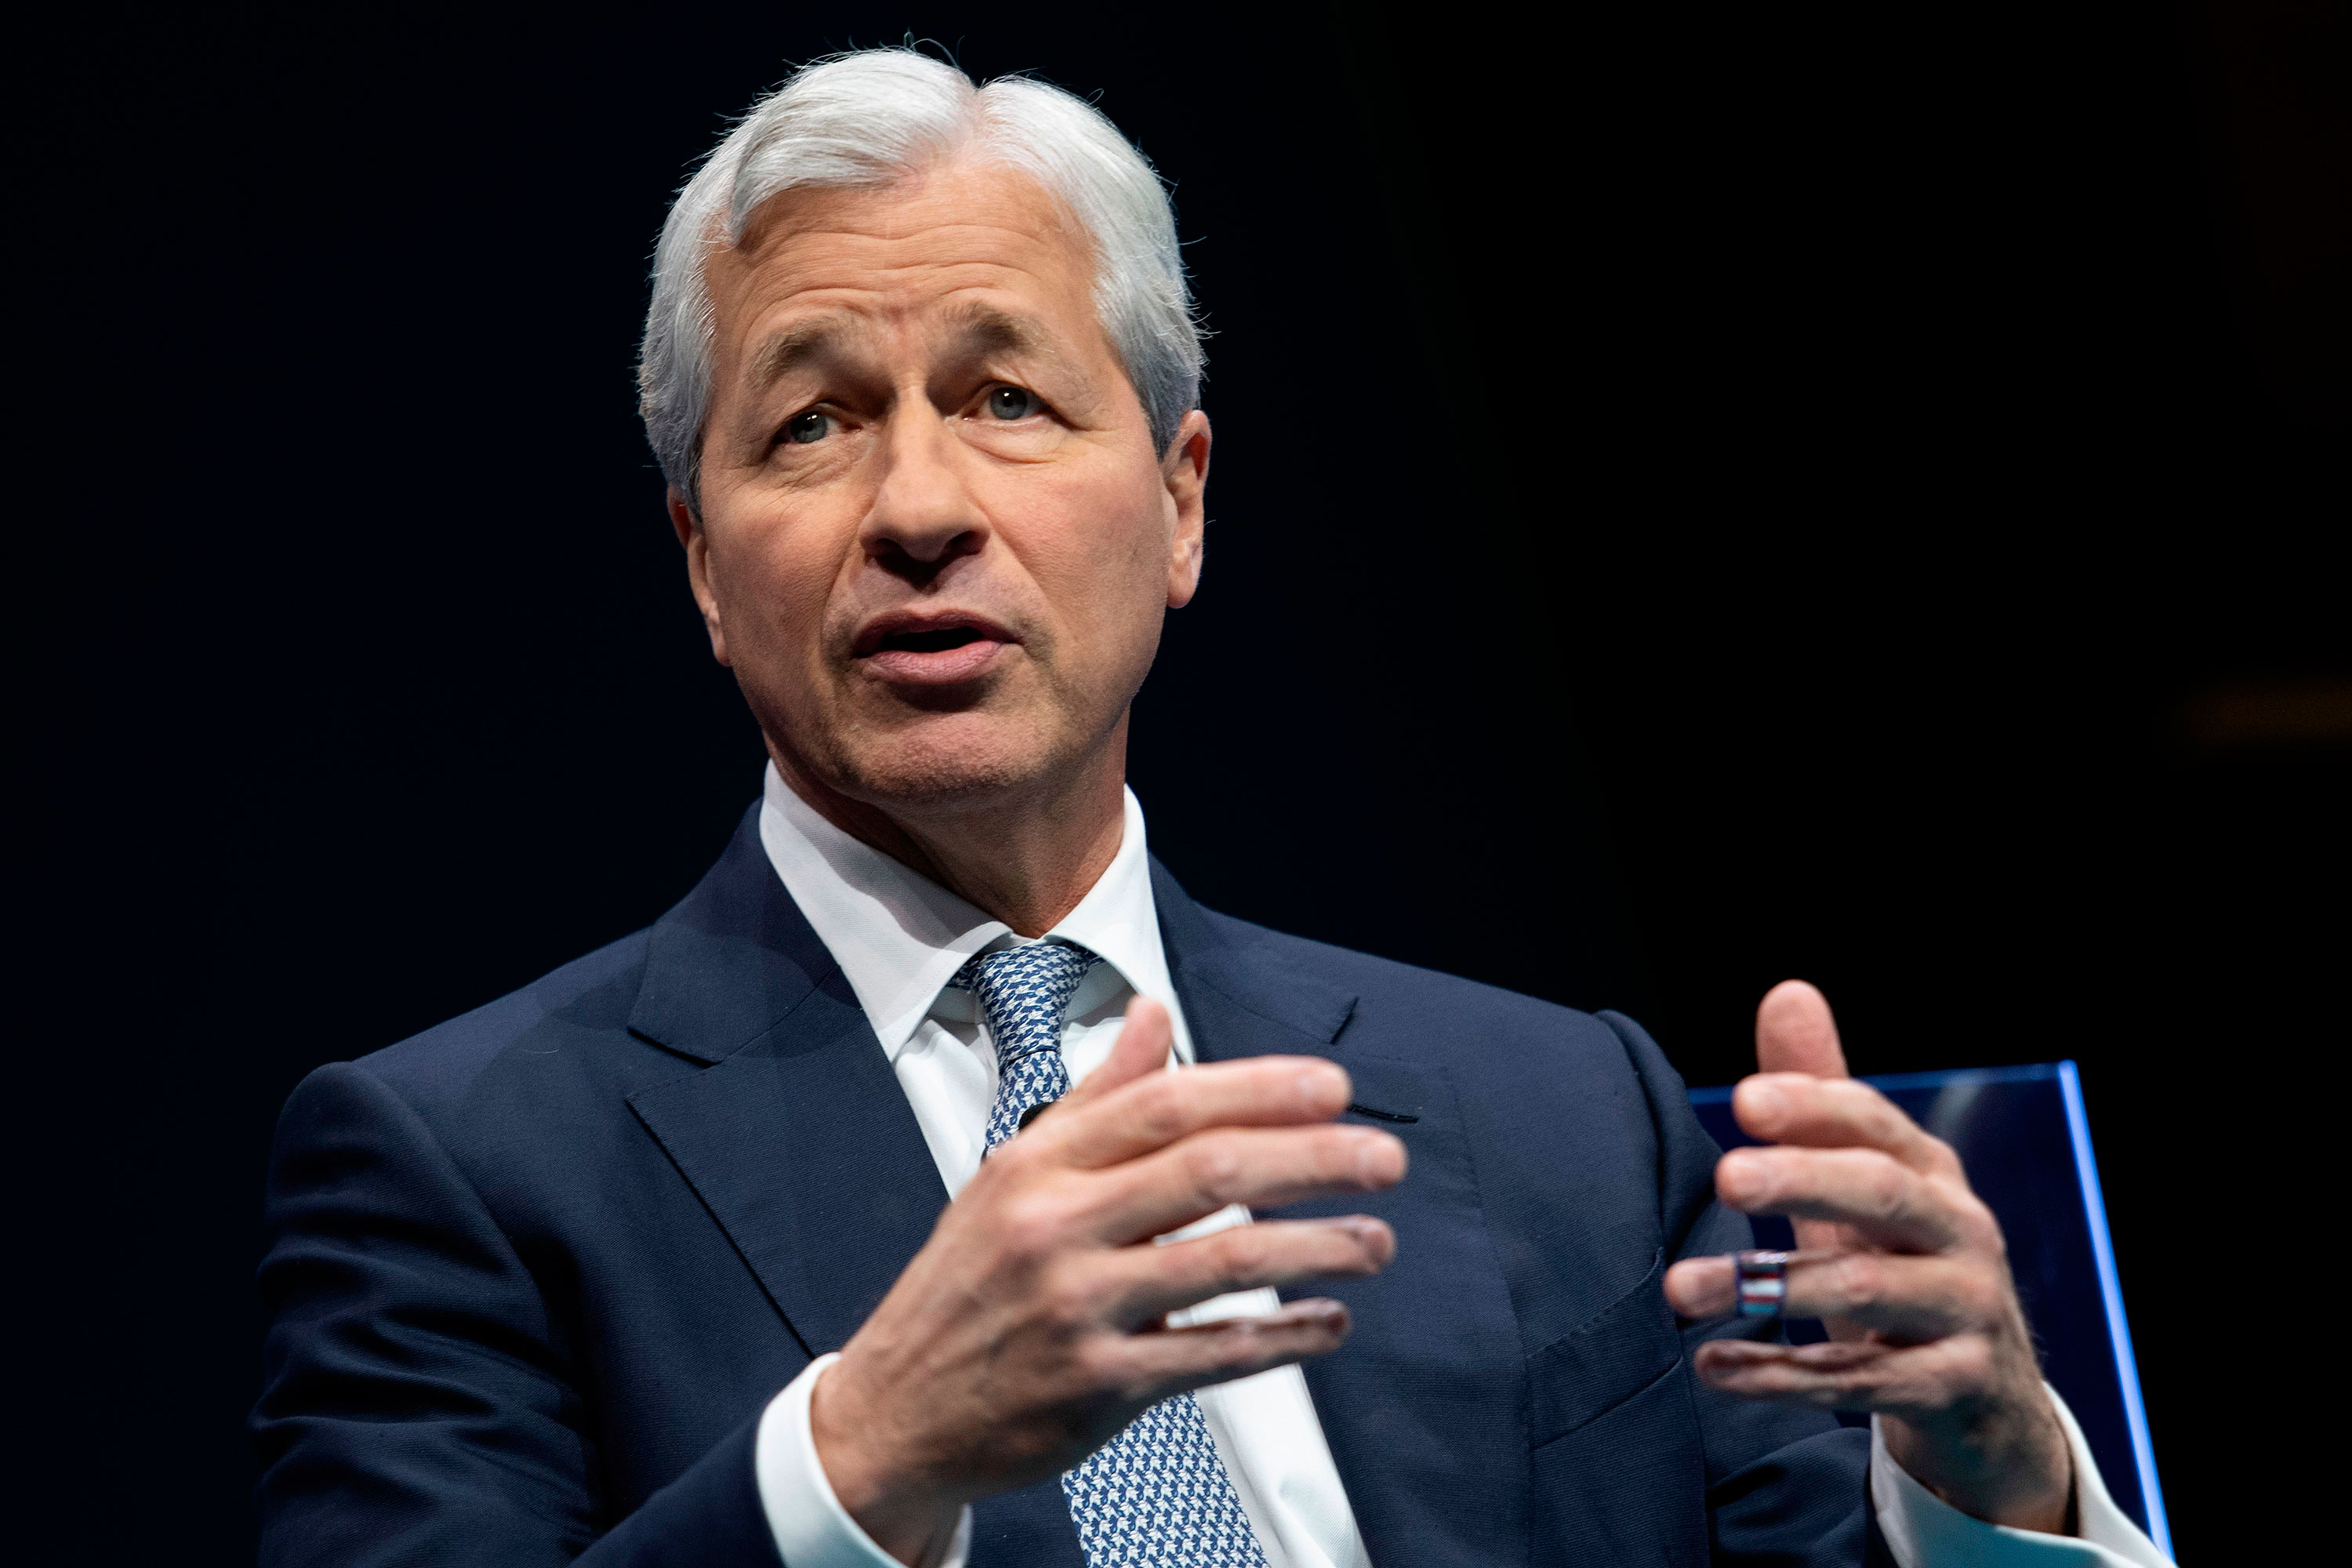 Jamie Dimon: The stock market doesn't reflect Americans' pain